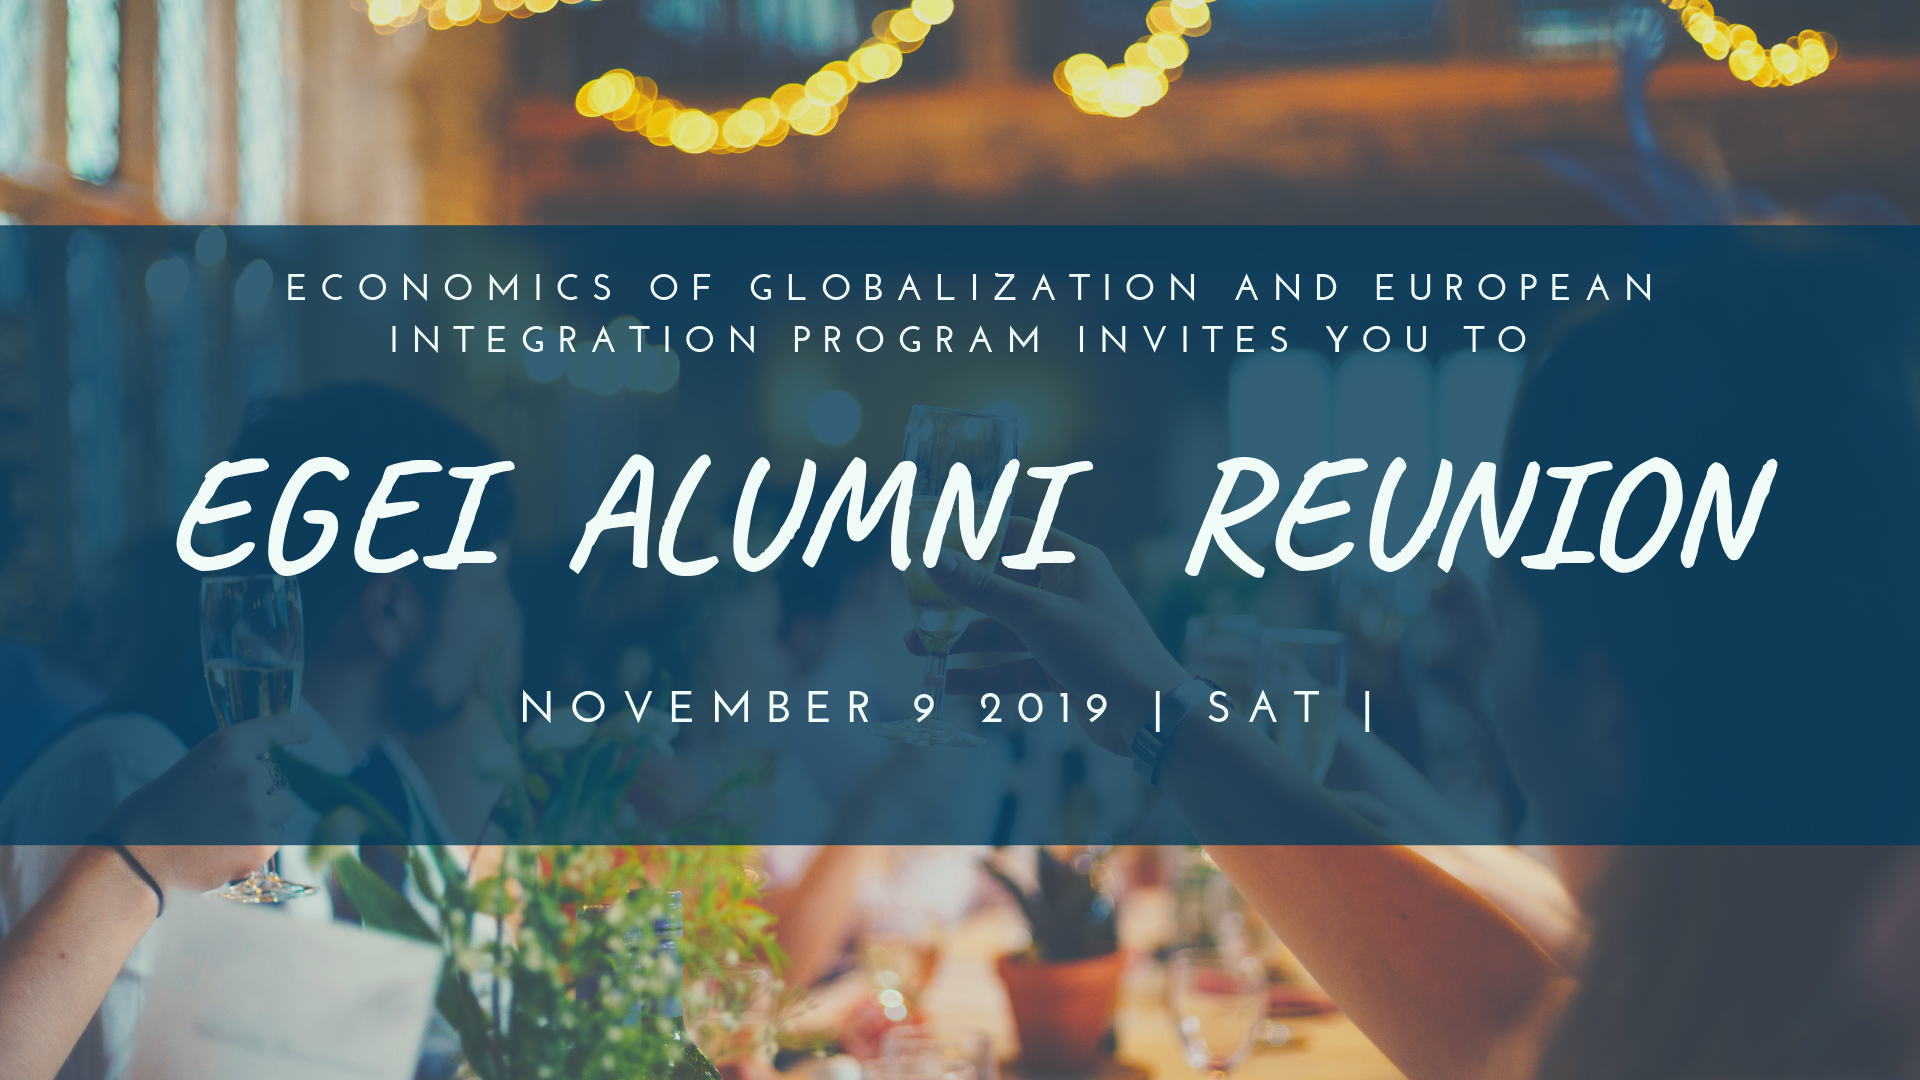 EITEI / EGEI Alumni Reunion, Prague, 9 November 2019